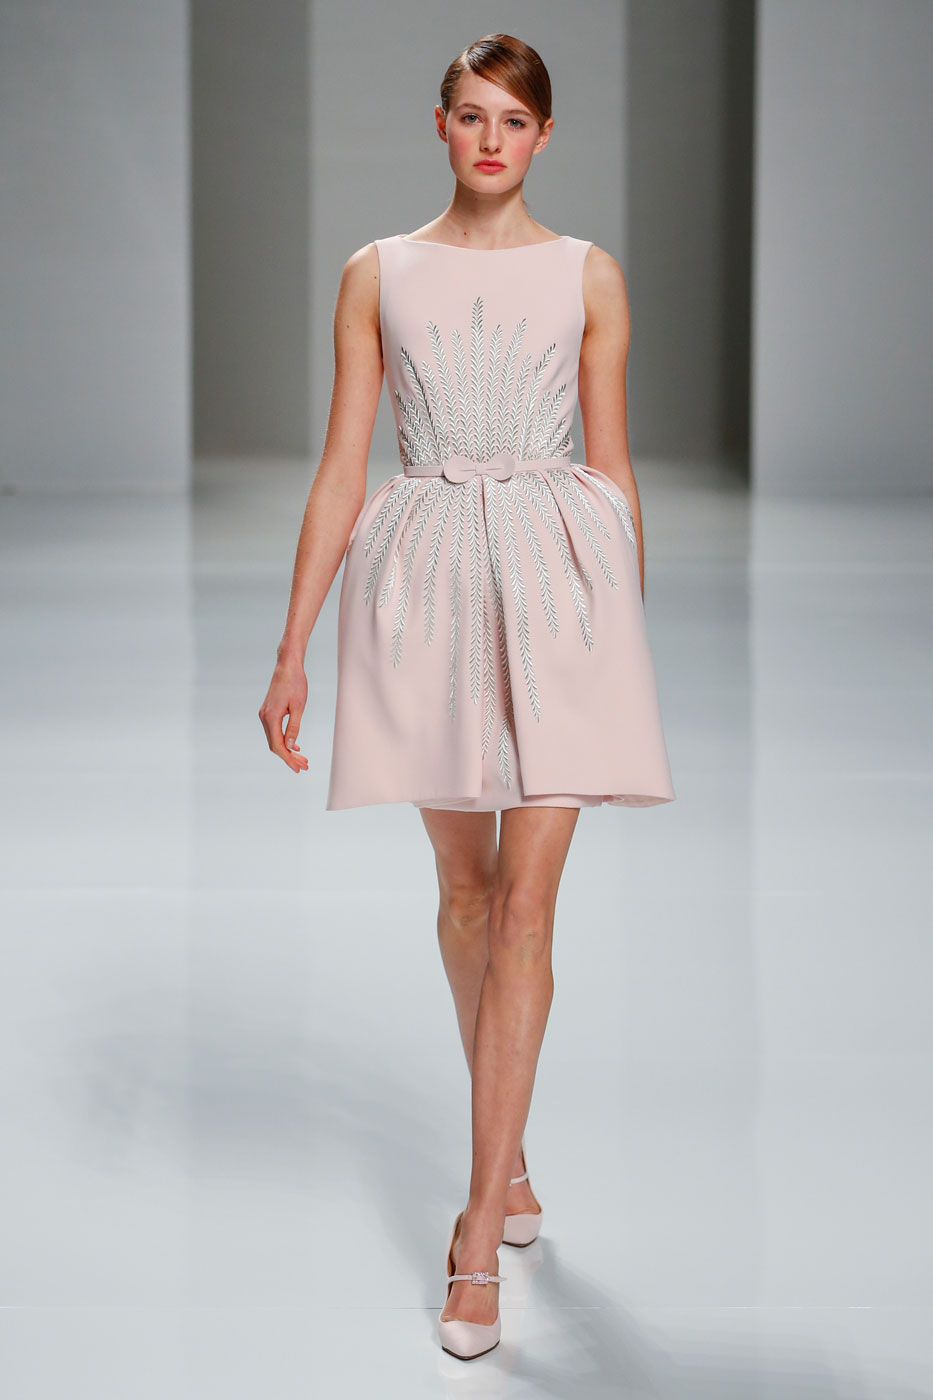 Georges-Hobeika-fashion-runway-show-haute-couture-paris-spring-2015-the-impression-01